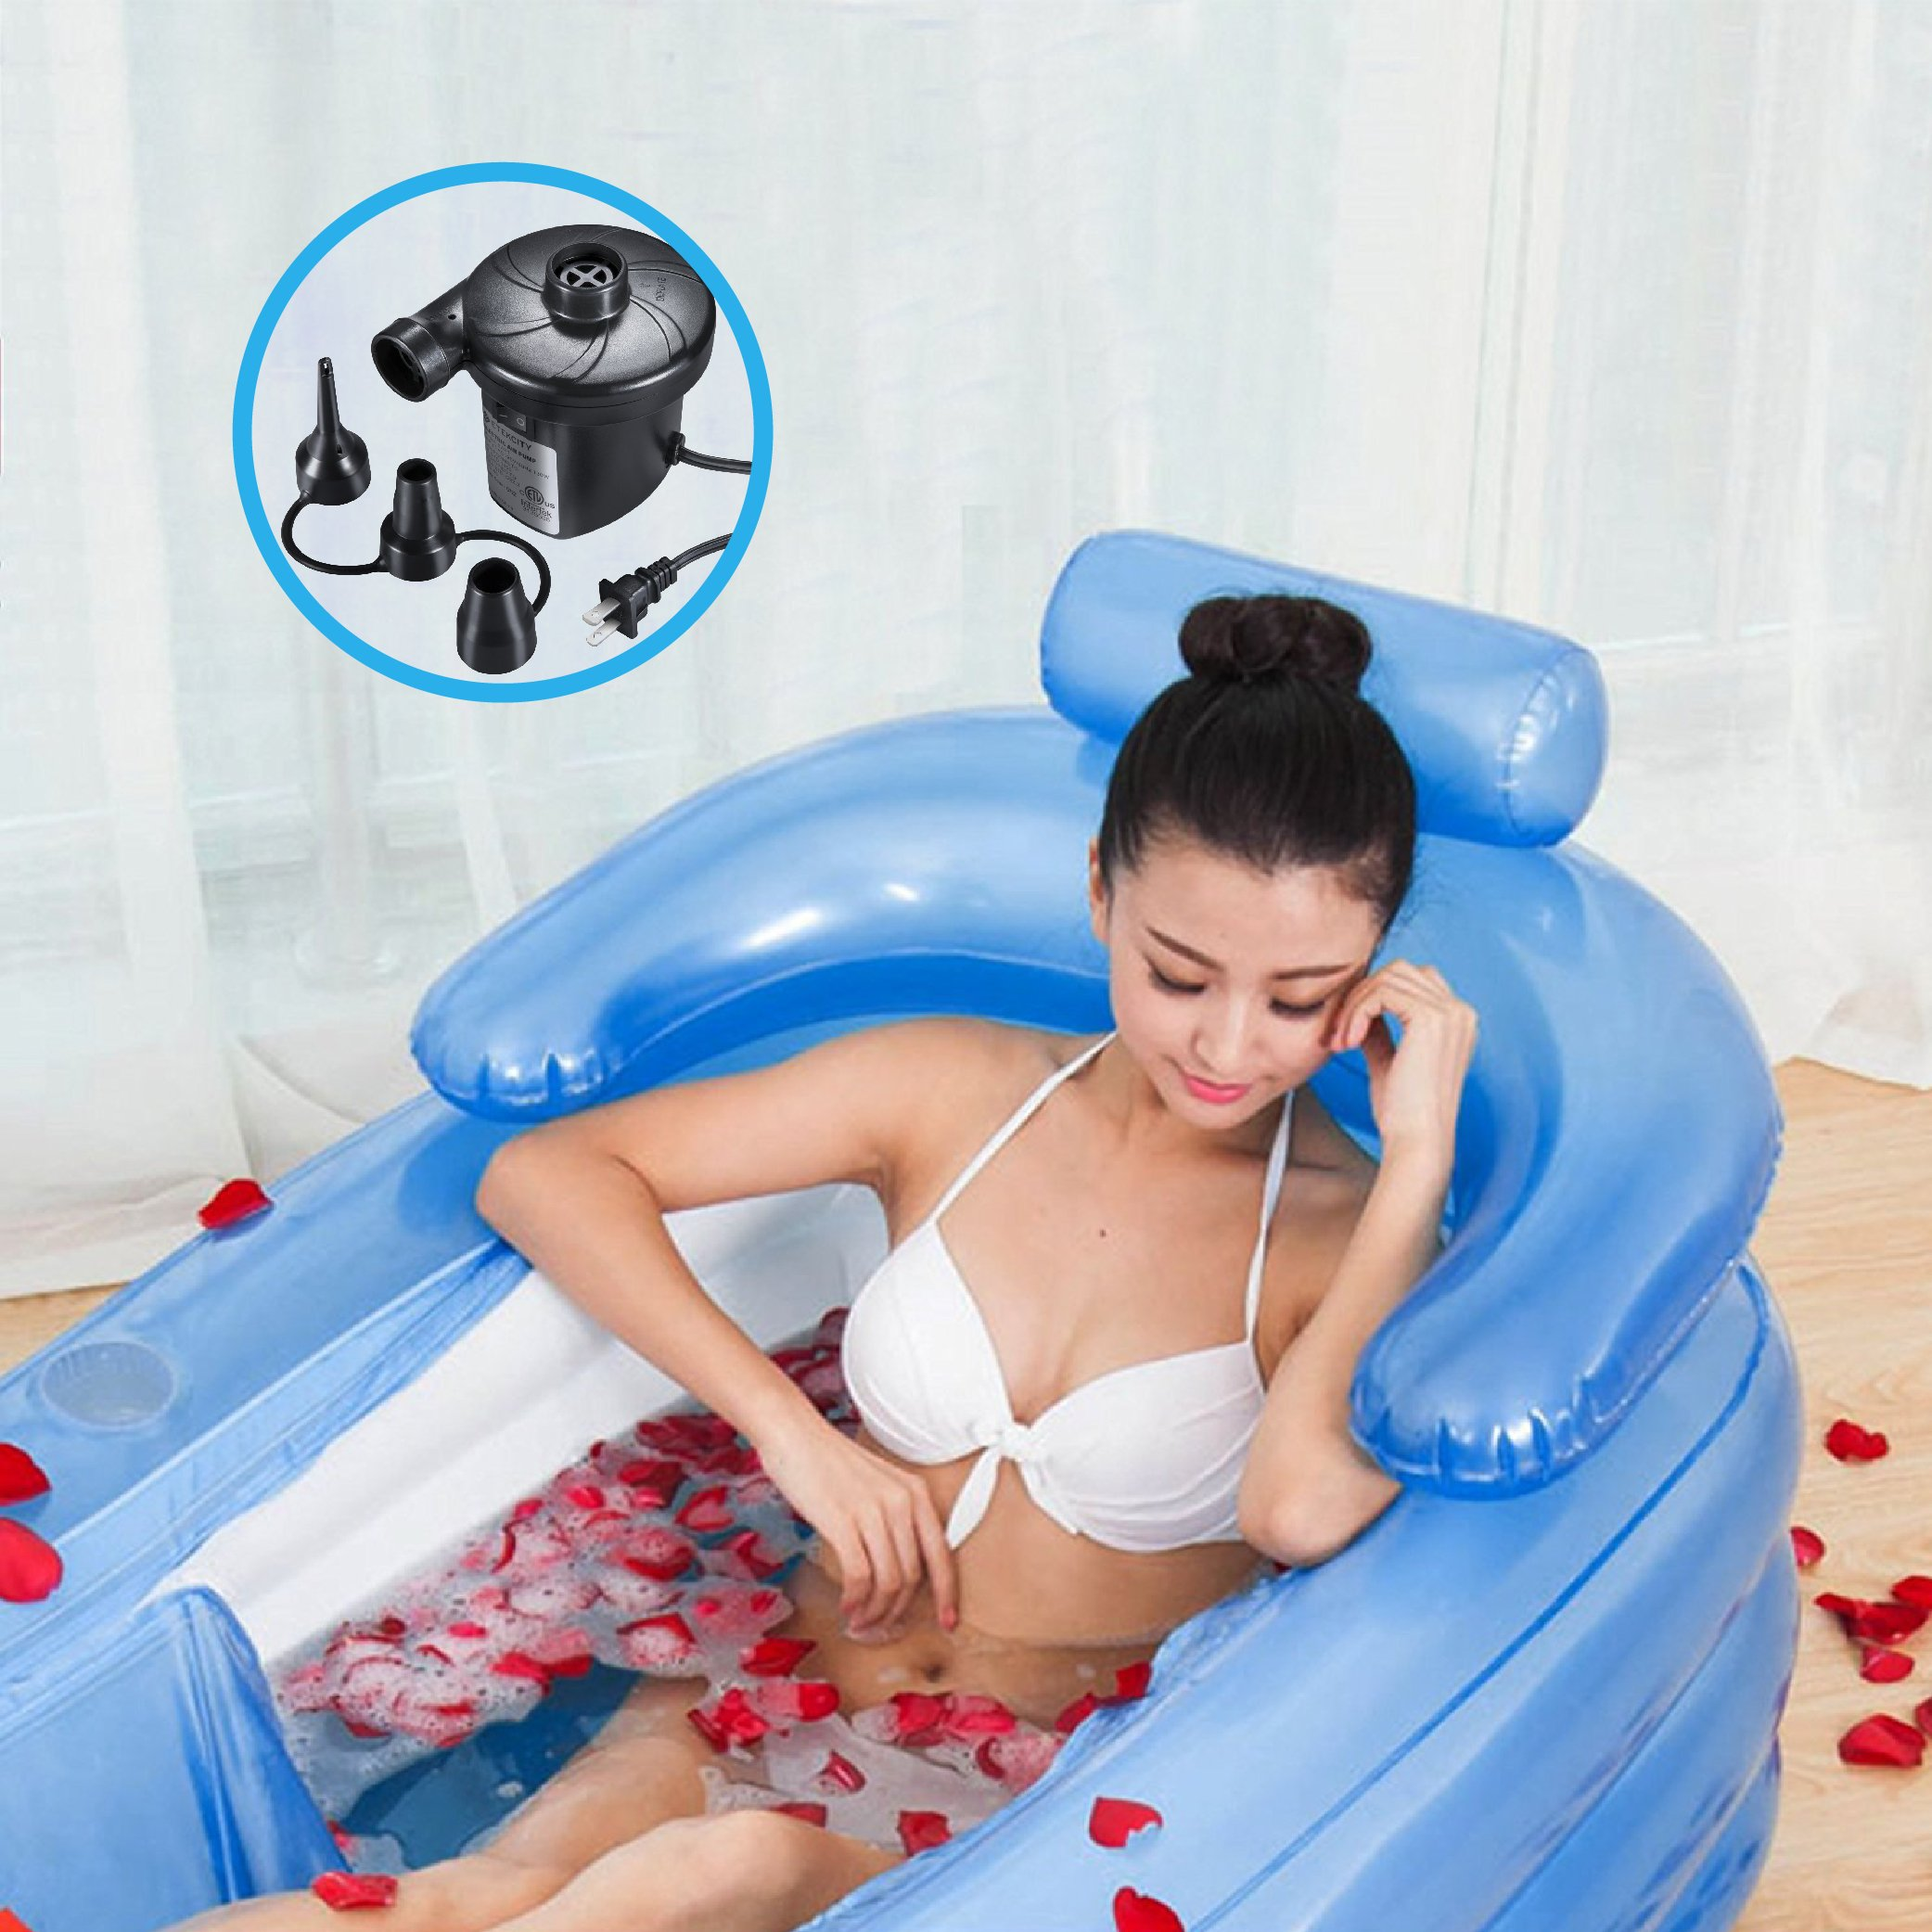 PENSON & CO. COMIN18JU002266 BABAT0038BL Inflatable Bath Tub PVC Portable Adult Bathtub Bathroom SPA with Electric Air Pump